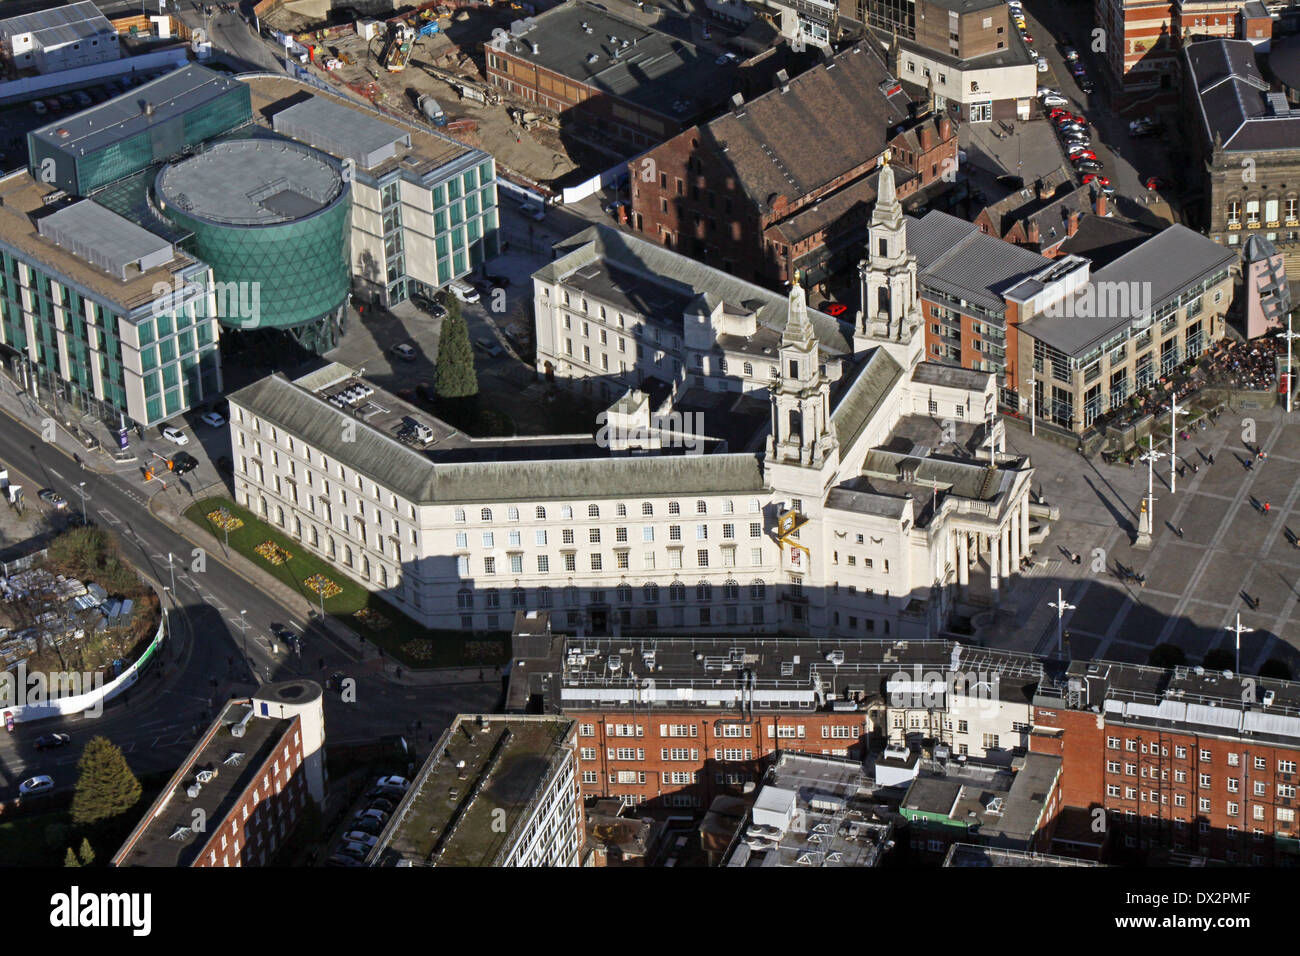 aerial view of Leeds Civic Hall in Millennium Square, Leeds - Stock Image